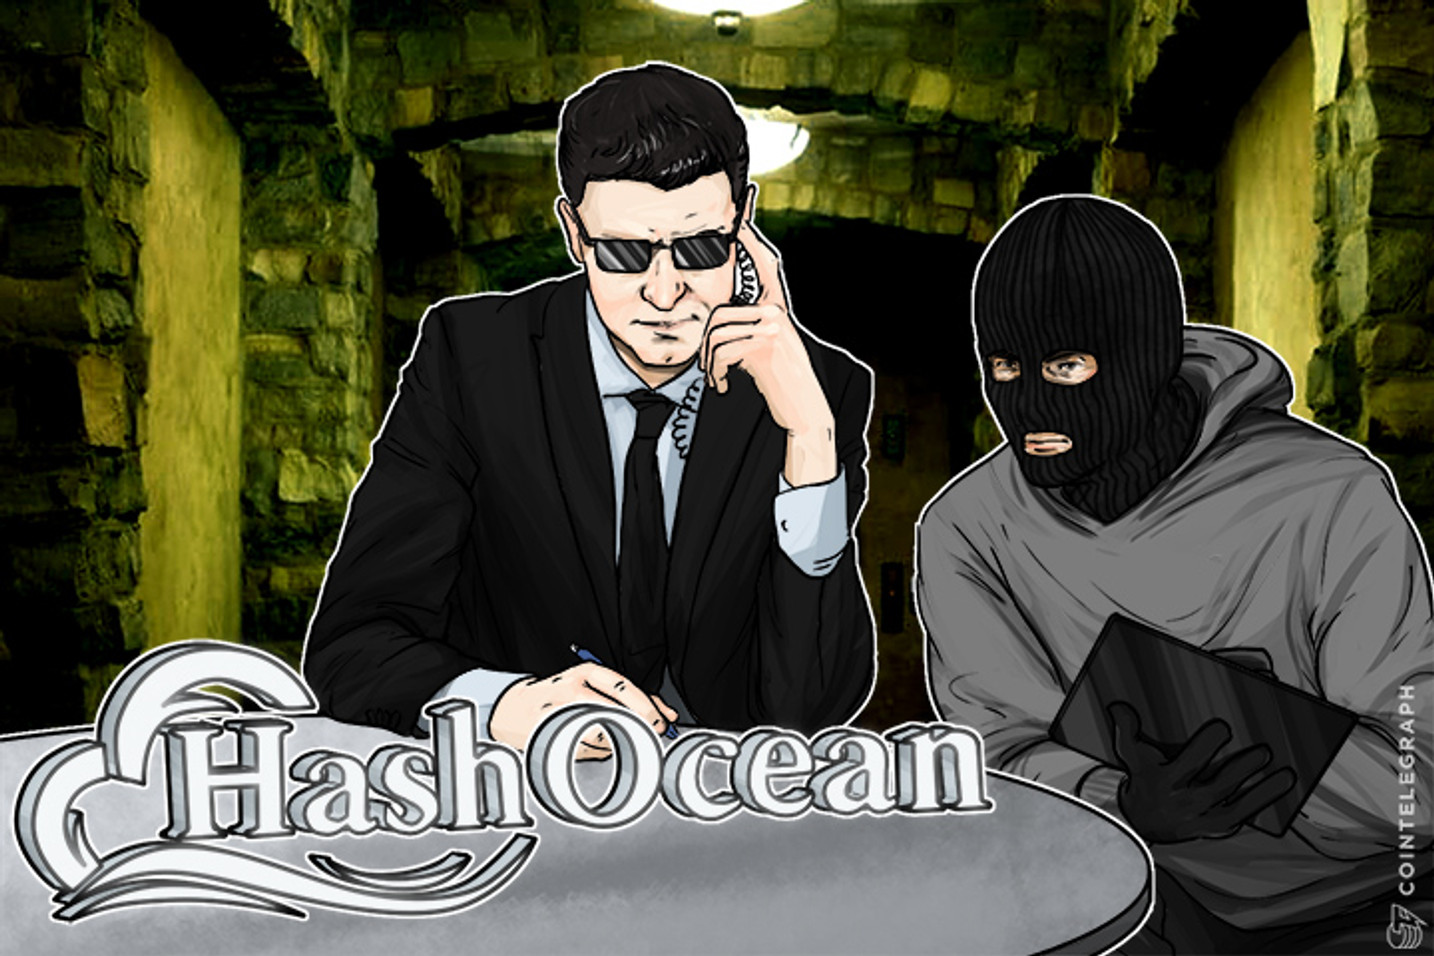 HashOcean Scam Victims Sign Petitions to FBI, Hackers to Reveal More Scams